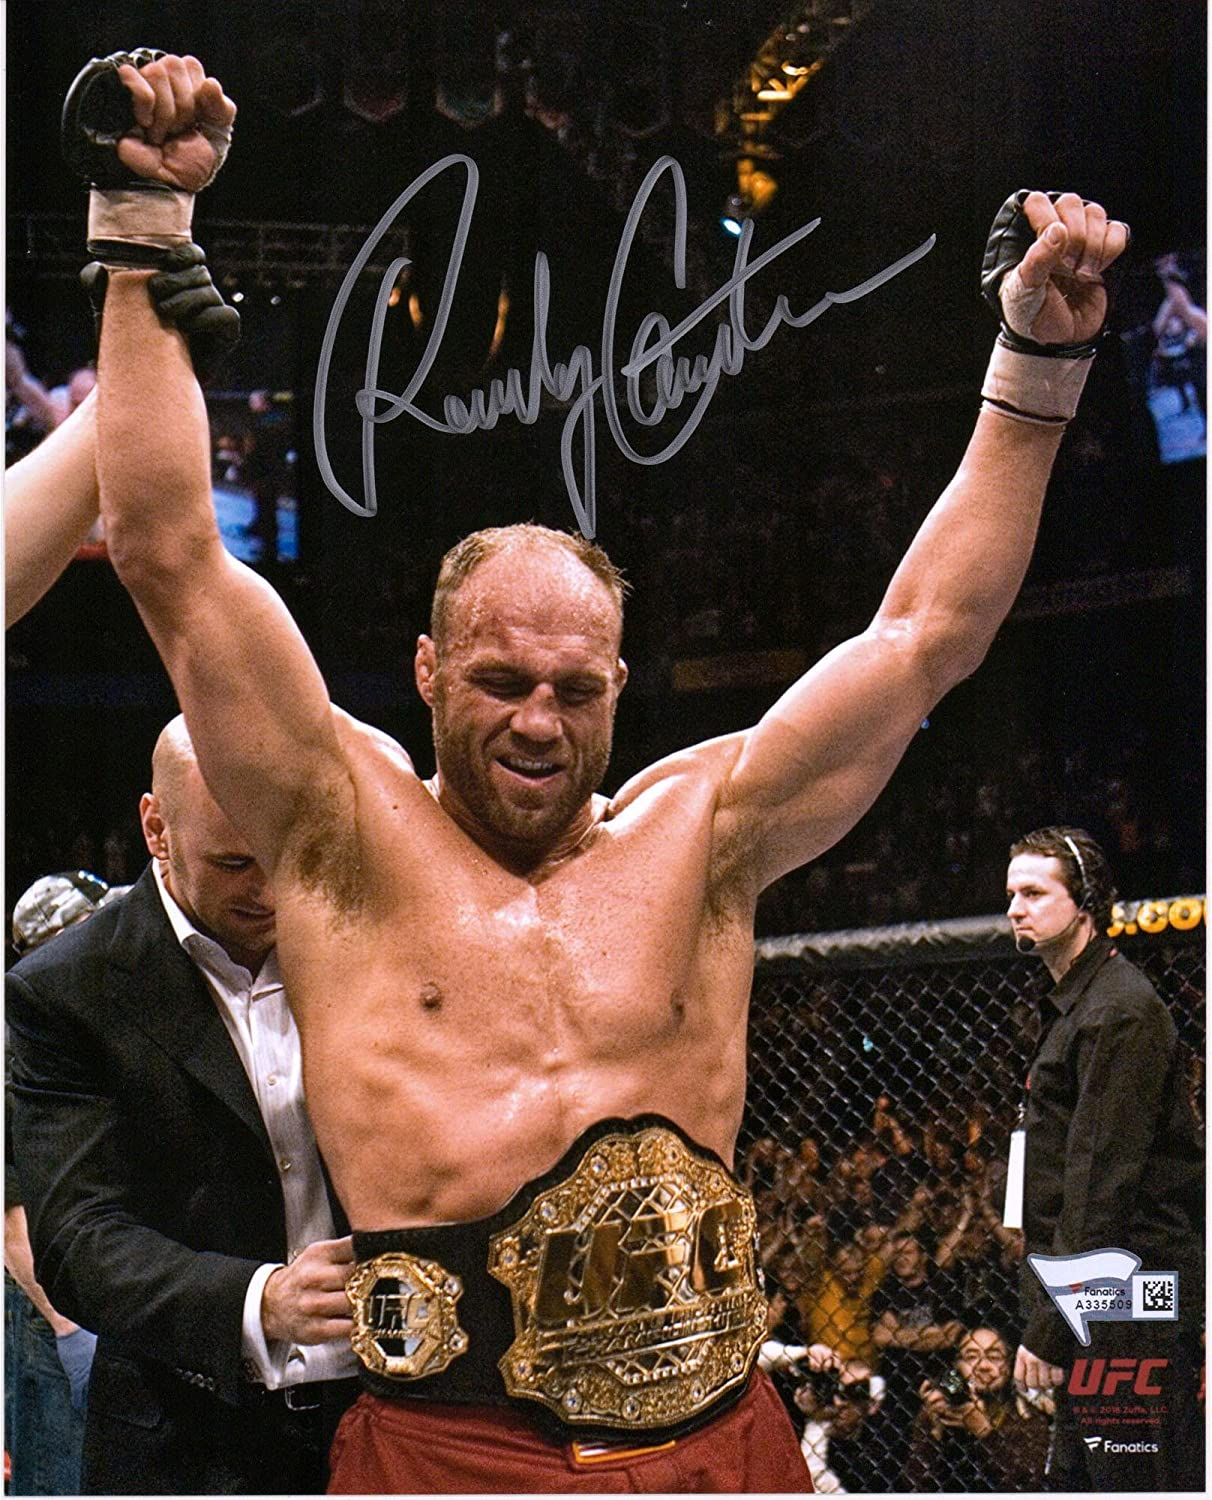 Randy Couture Ultimate Fighting Championship Autographed 8' x 10' Raising Arms Photograph - Fanatics Authentic Certified